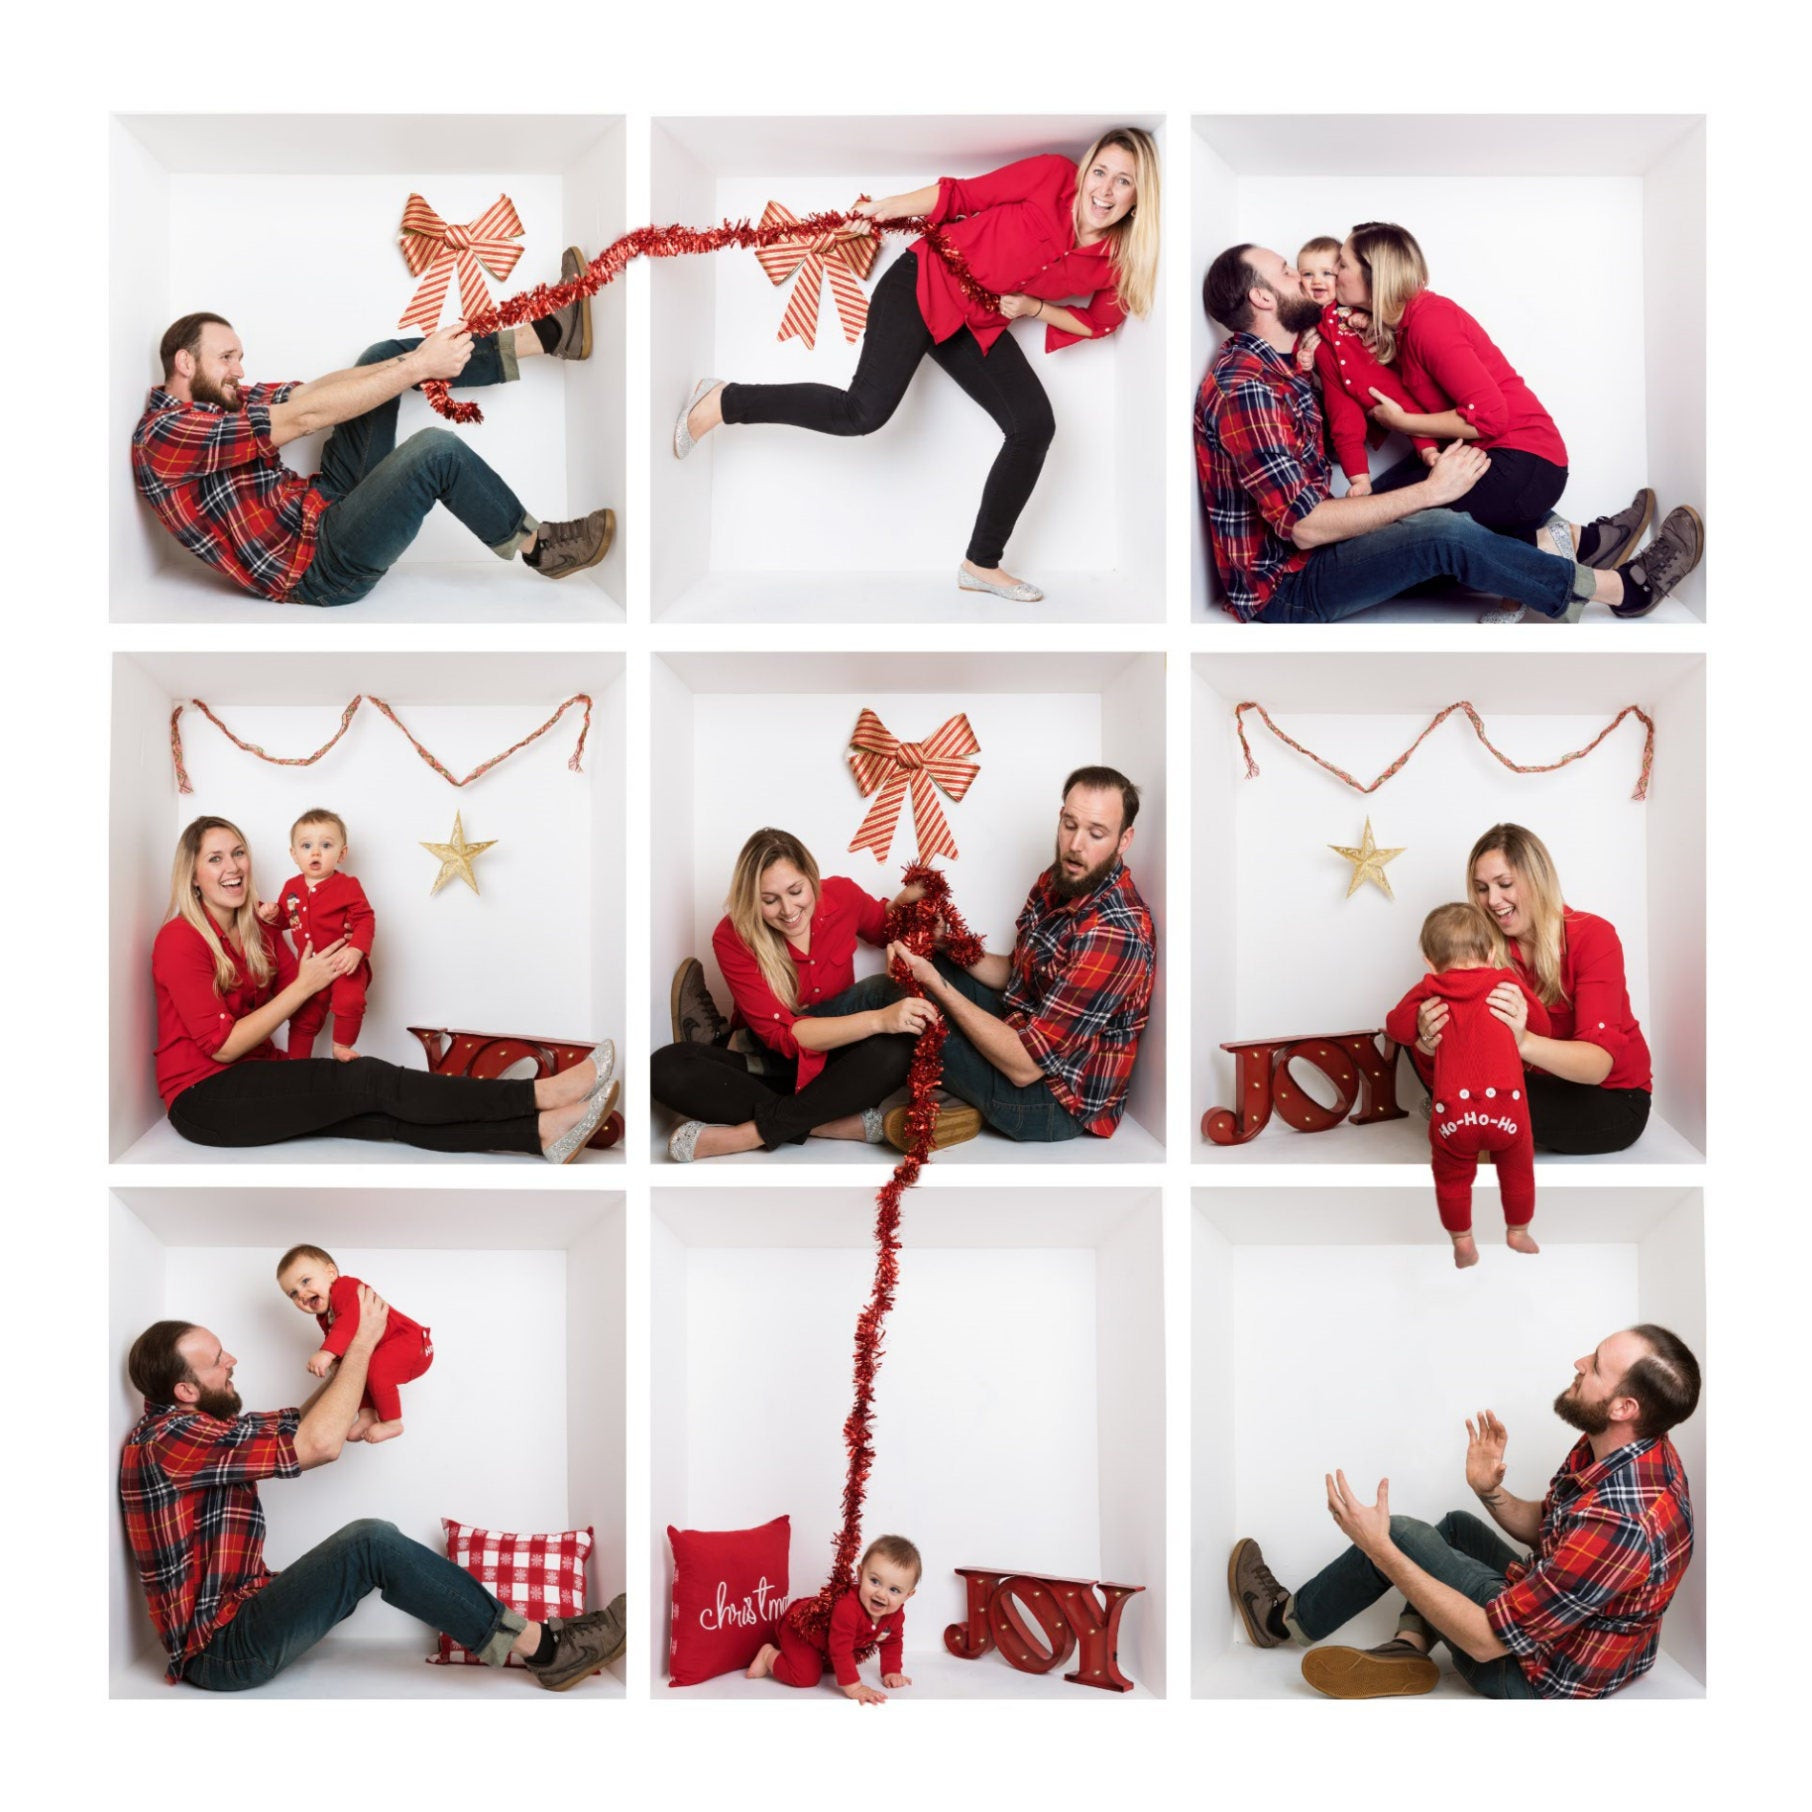 CHRISTMAS IN A BOX SHOOT